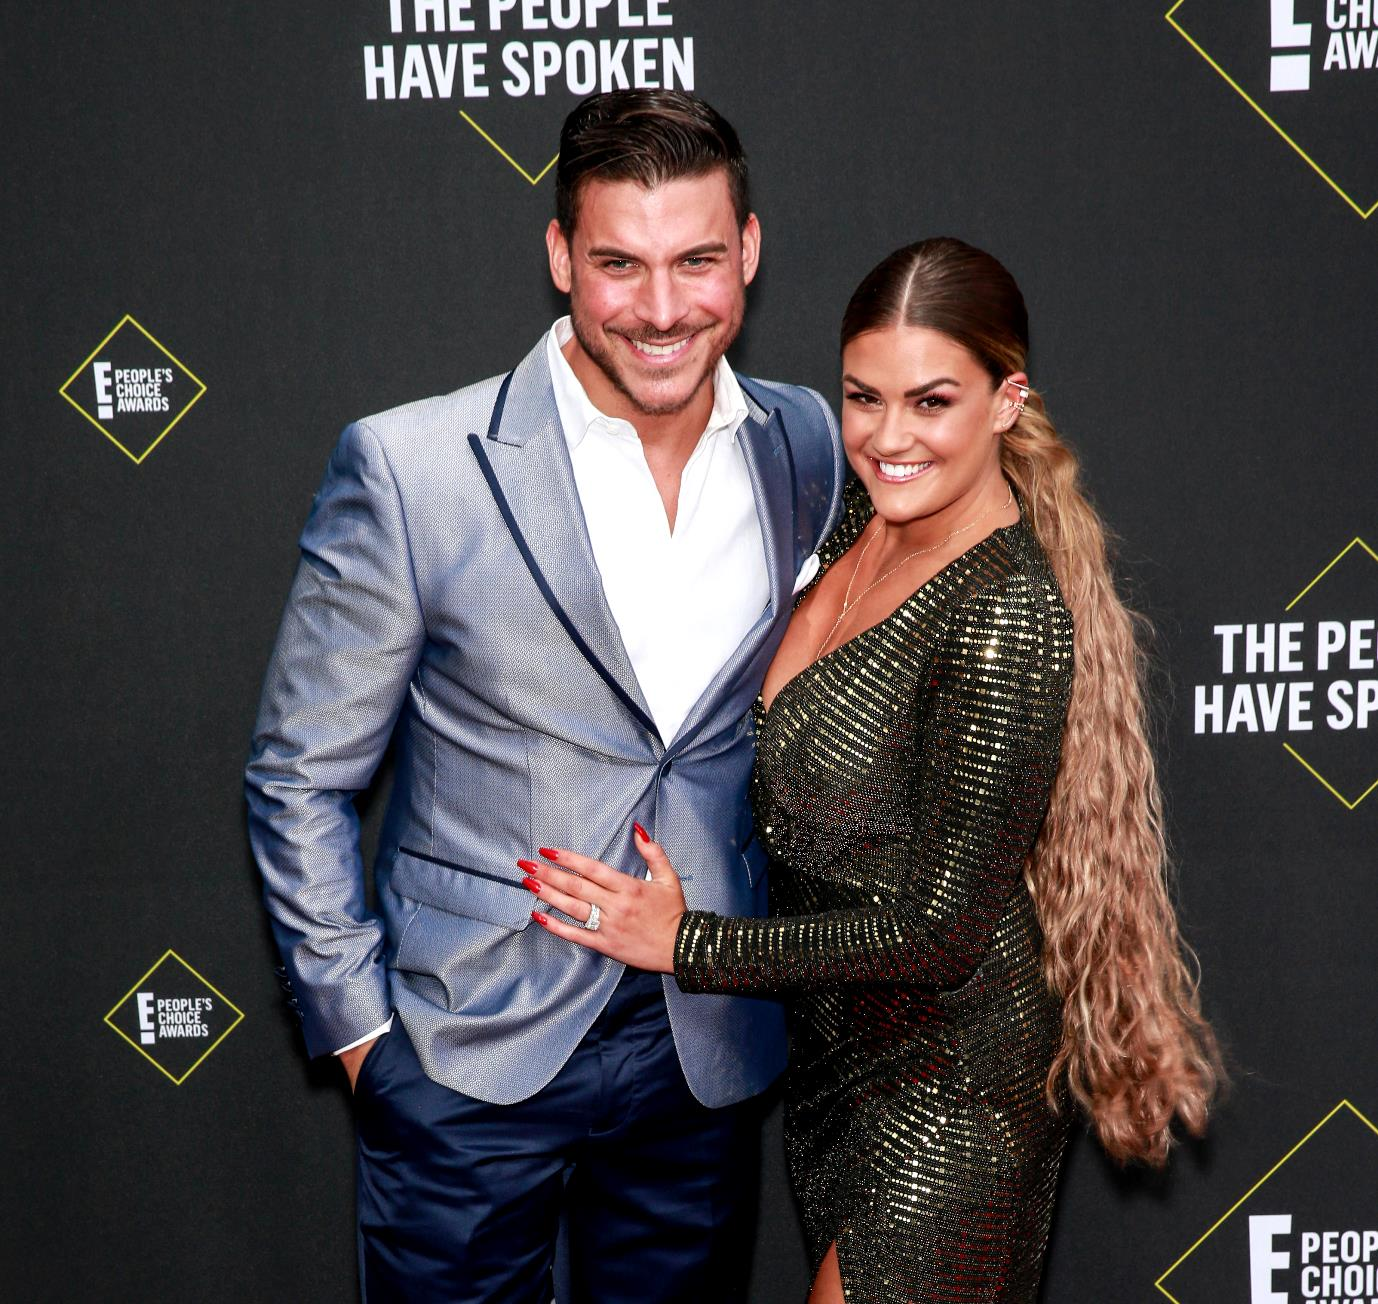 Jax Taylor and Brittany Cartwright Suspended by Sponsor as Thousands Sign Petition to Have Jax Fired by Bravo on Vanderpump Rules for Alleged 'Racism and Misogyny'